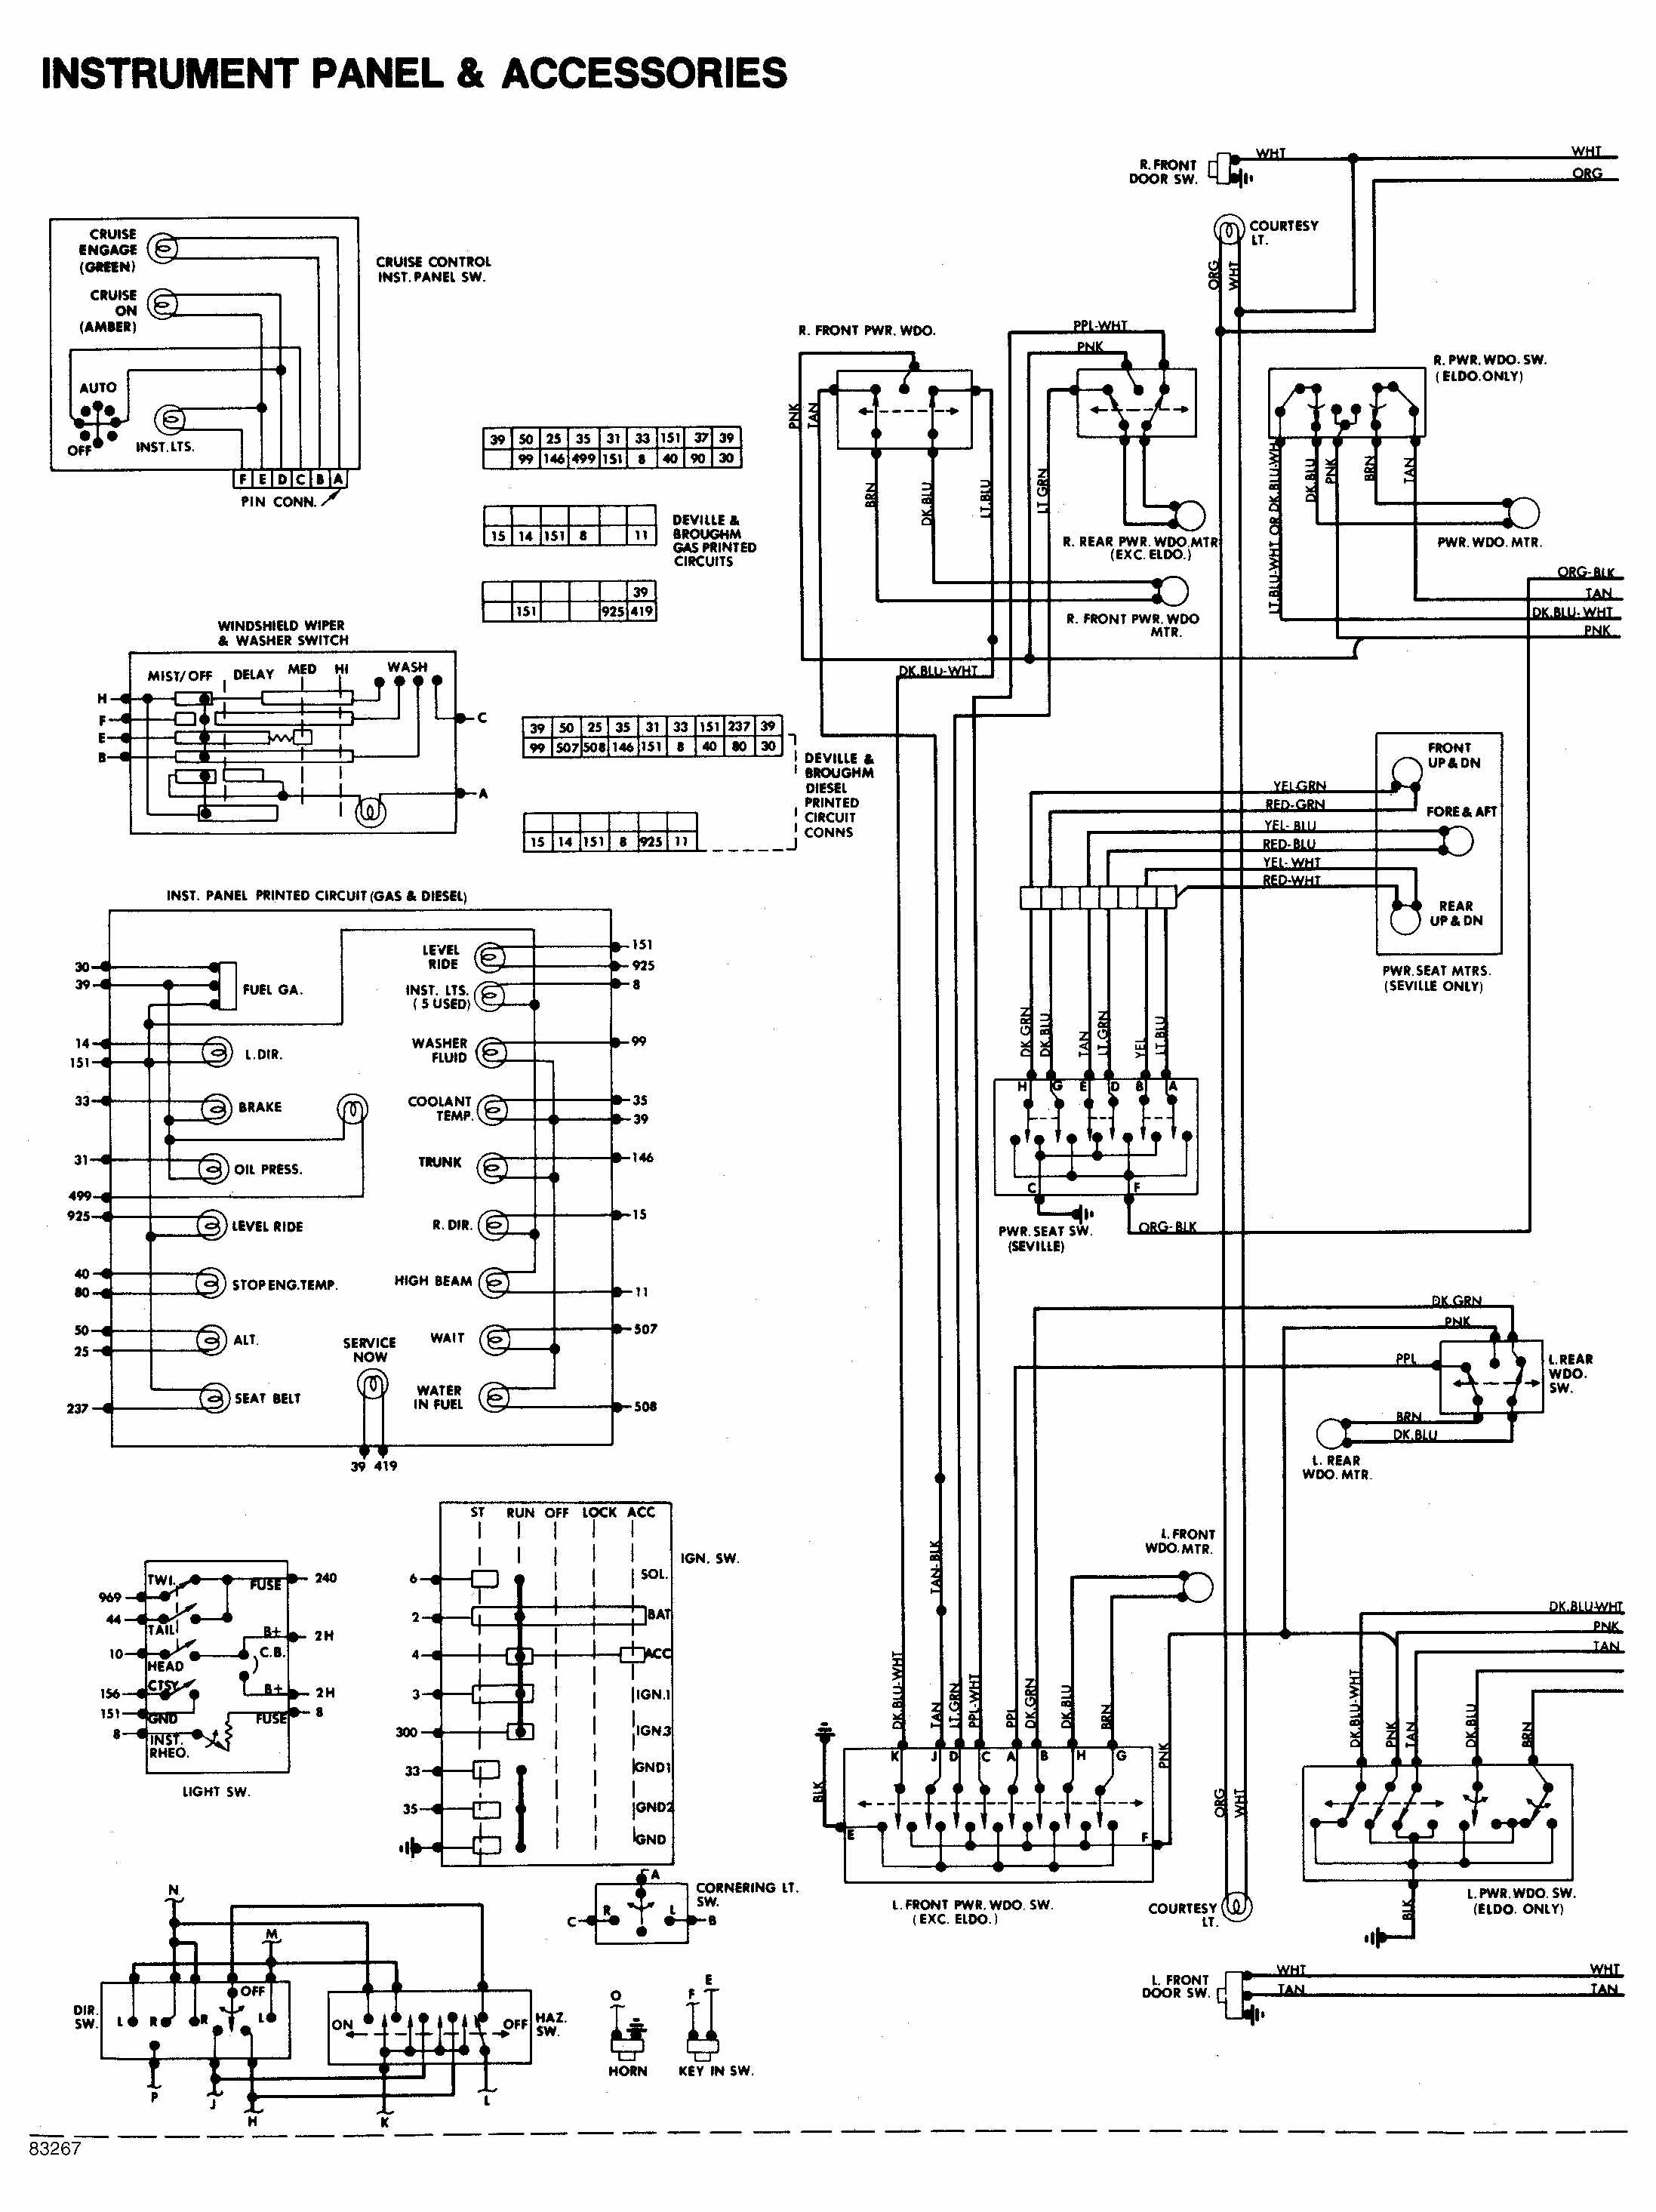 instrument panel and accessories wiring diagram of 1984 cadillac deville chevy diagrams 92 cadillac deville fuse box diagram at reclaimingppi.co